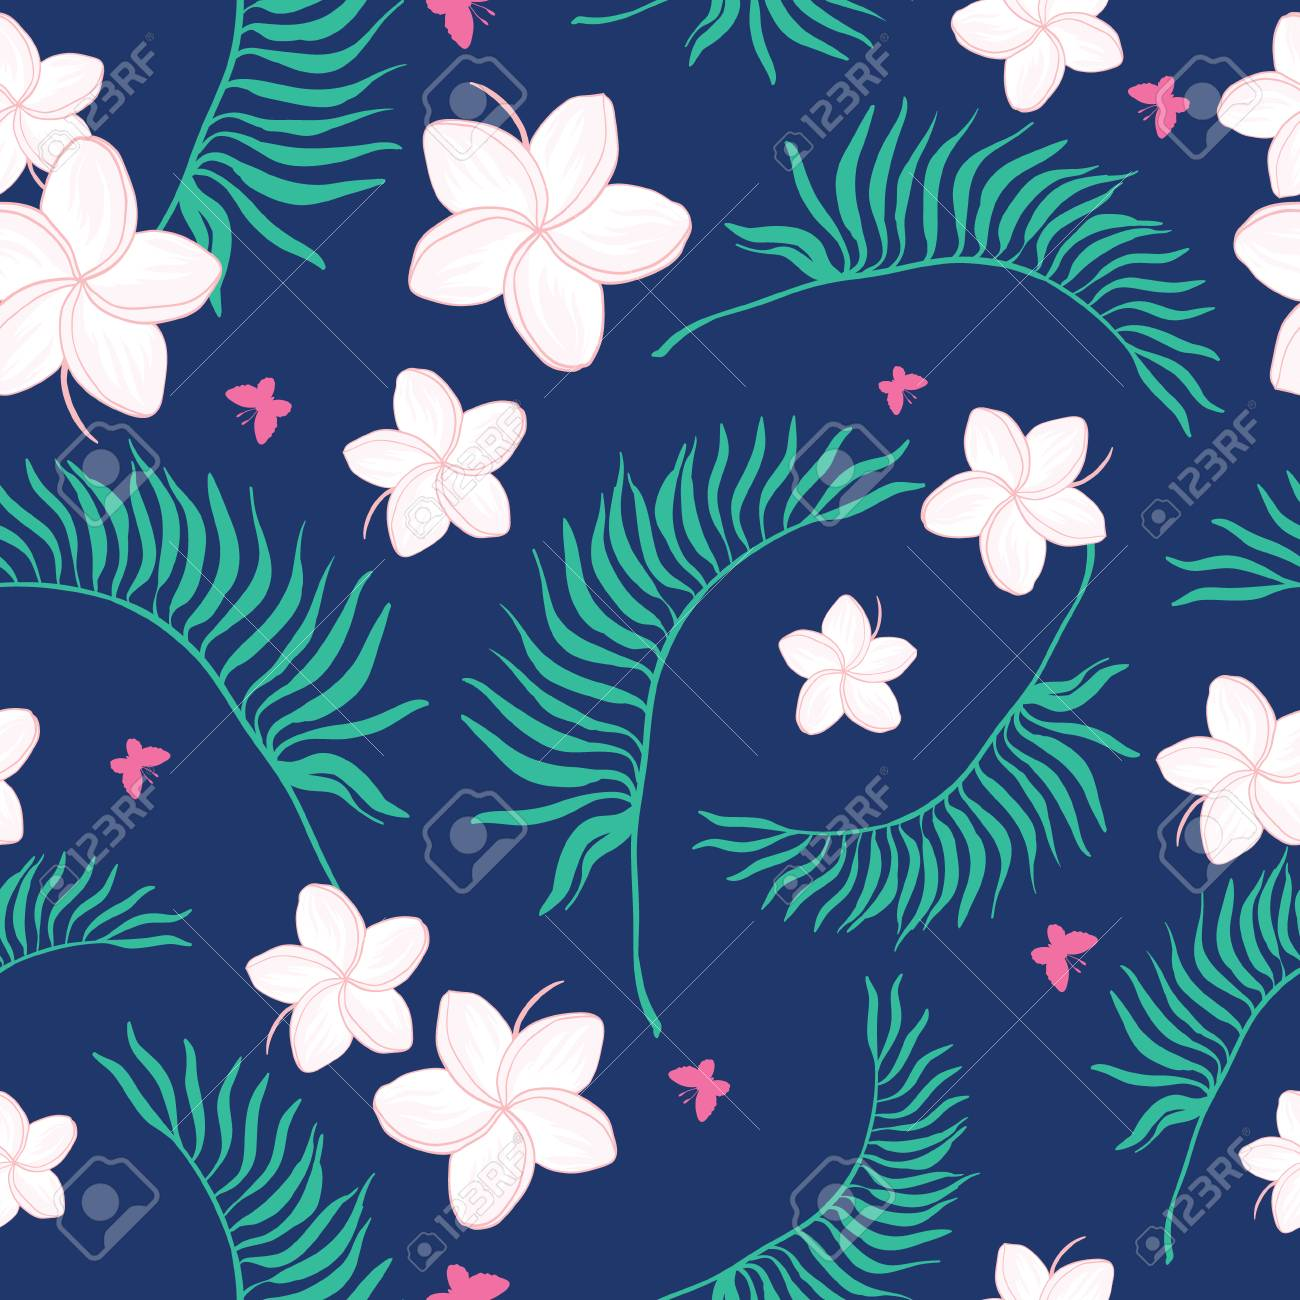 Tropical Navy And Pink Flowers Seamless Pattern Great For Summer